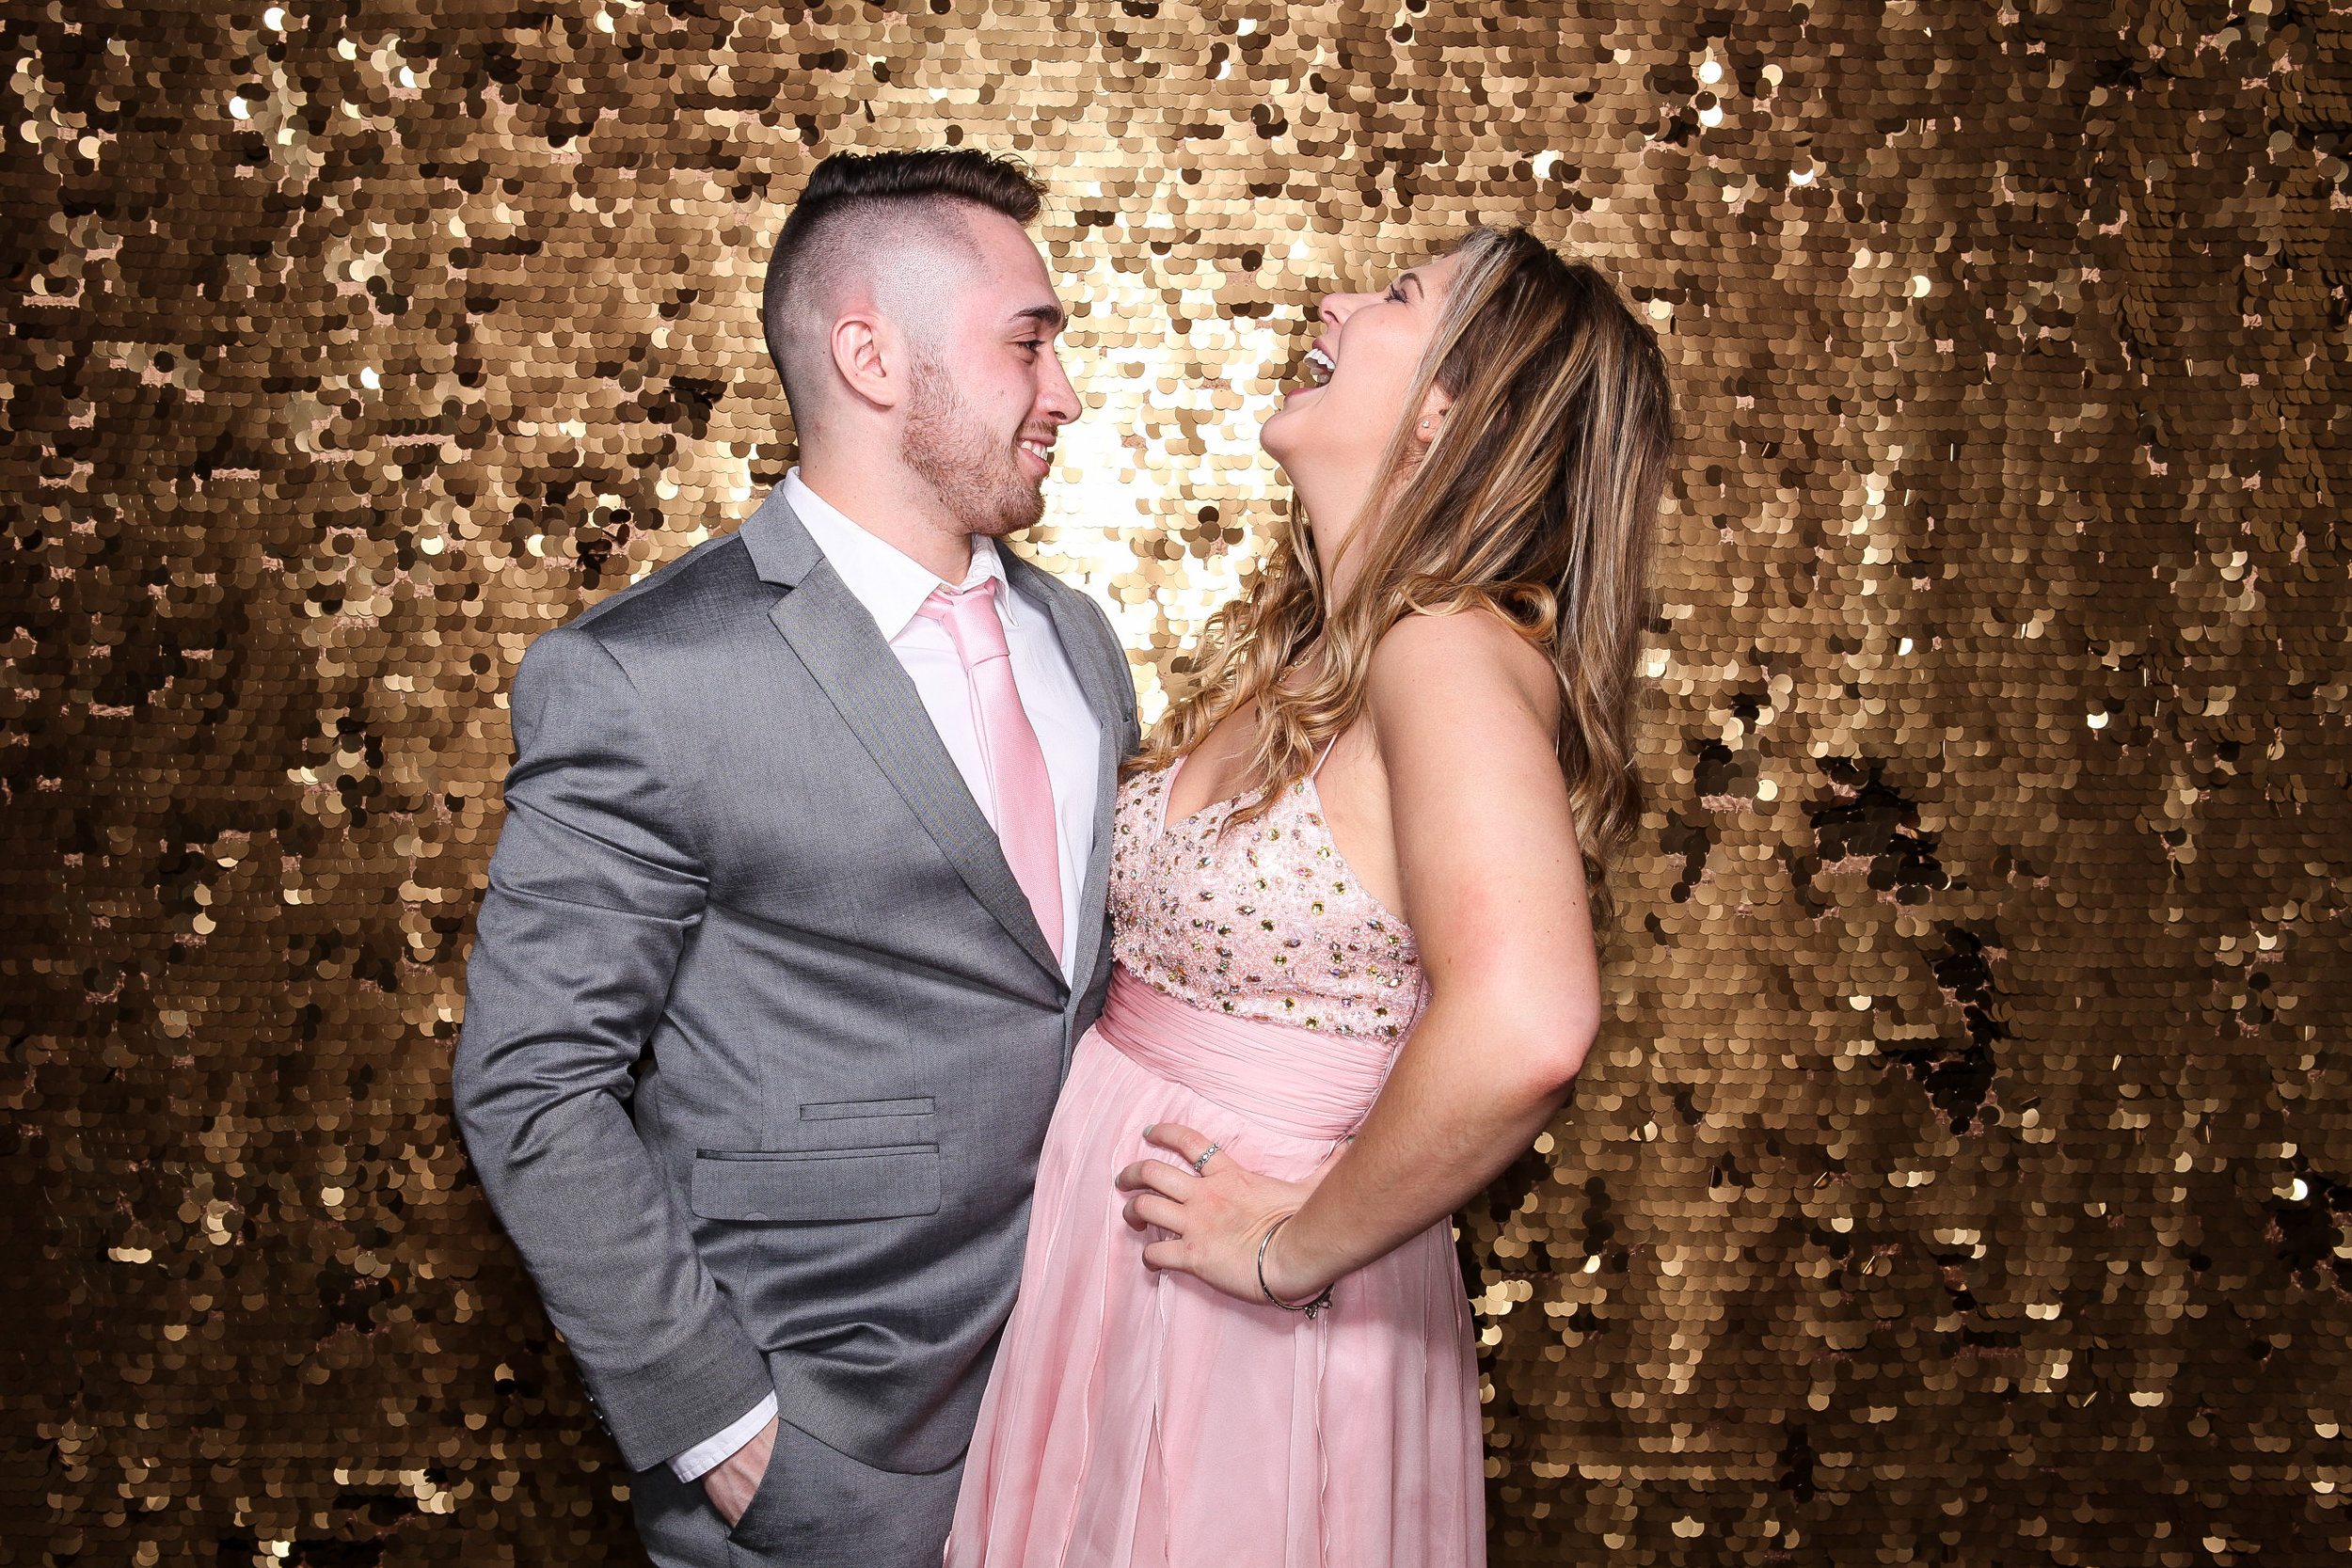 20190503_Adelphi_Senior_Formal-318.jpg